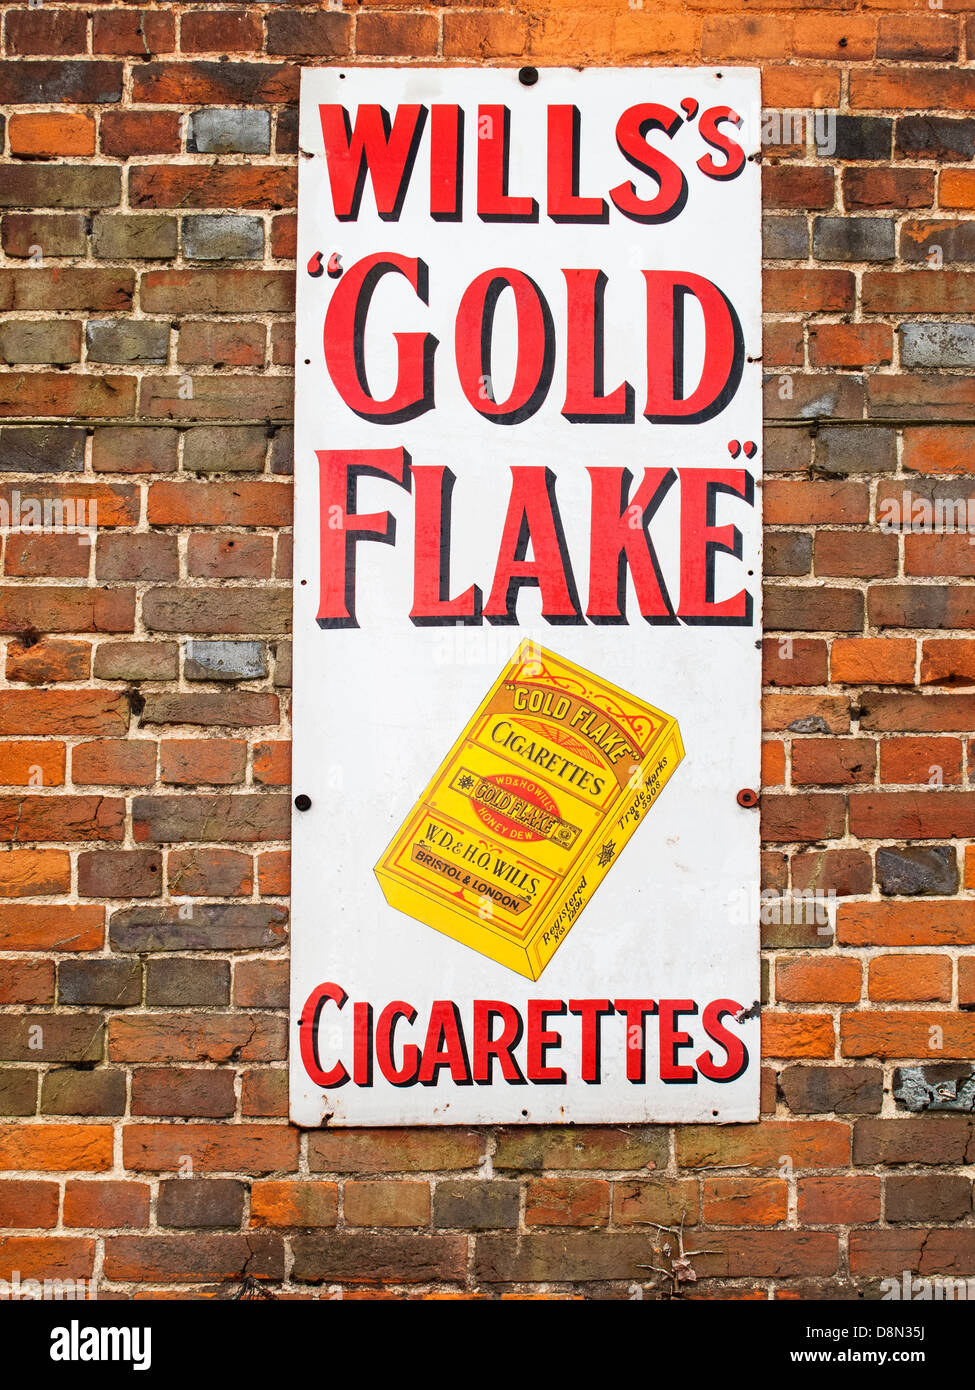 Vintage enamel advertising sign - Wills's Gold Flake cigarettes - Stock Image